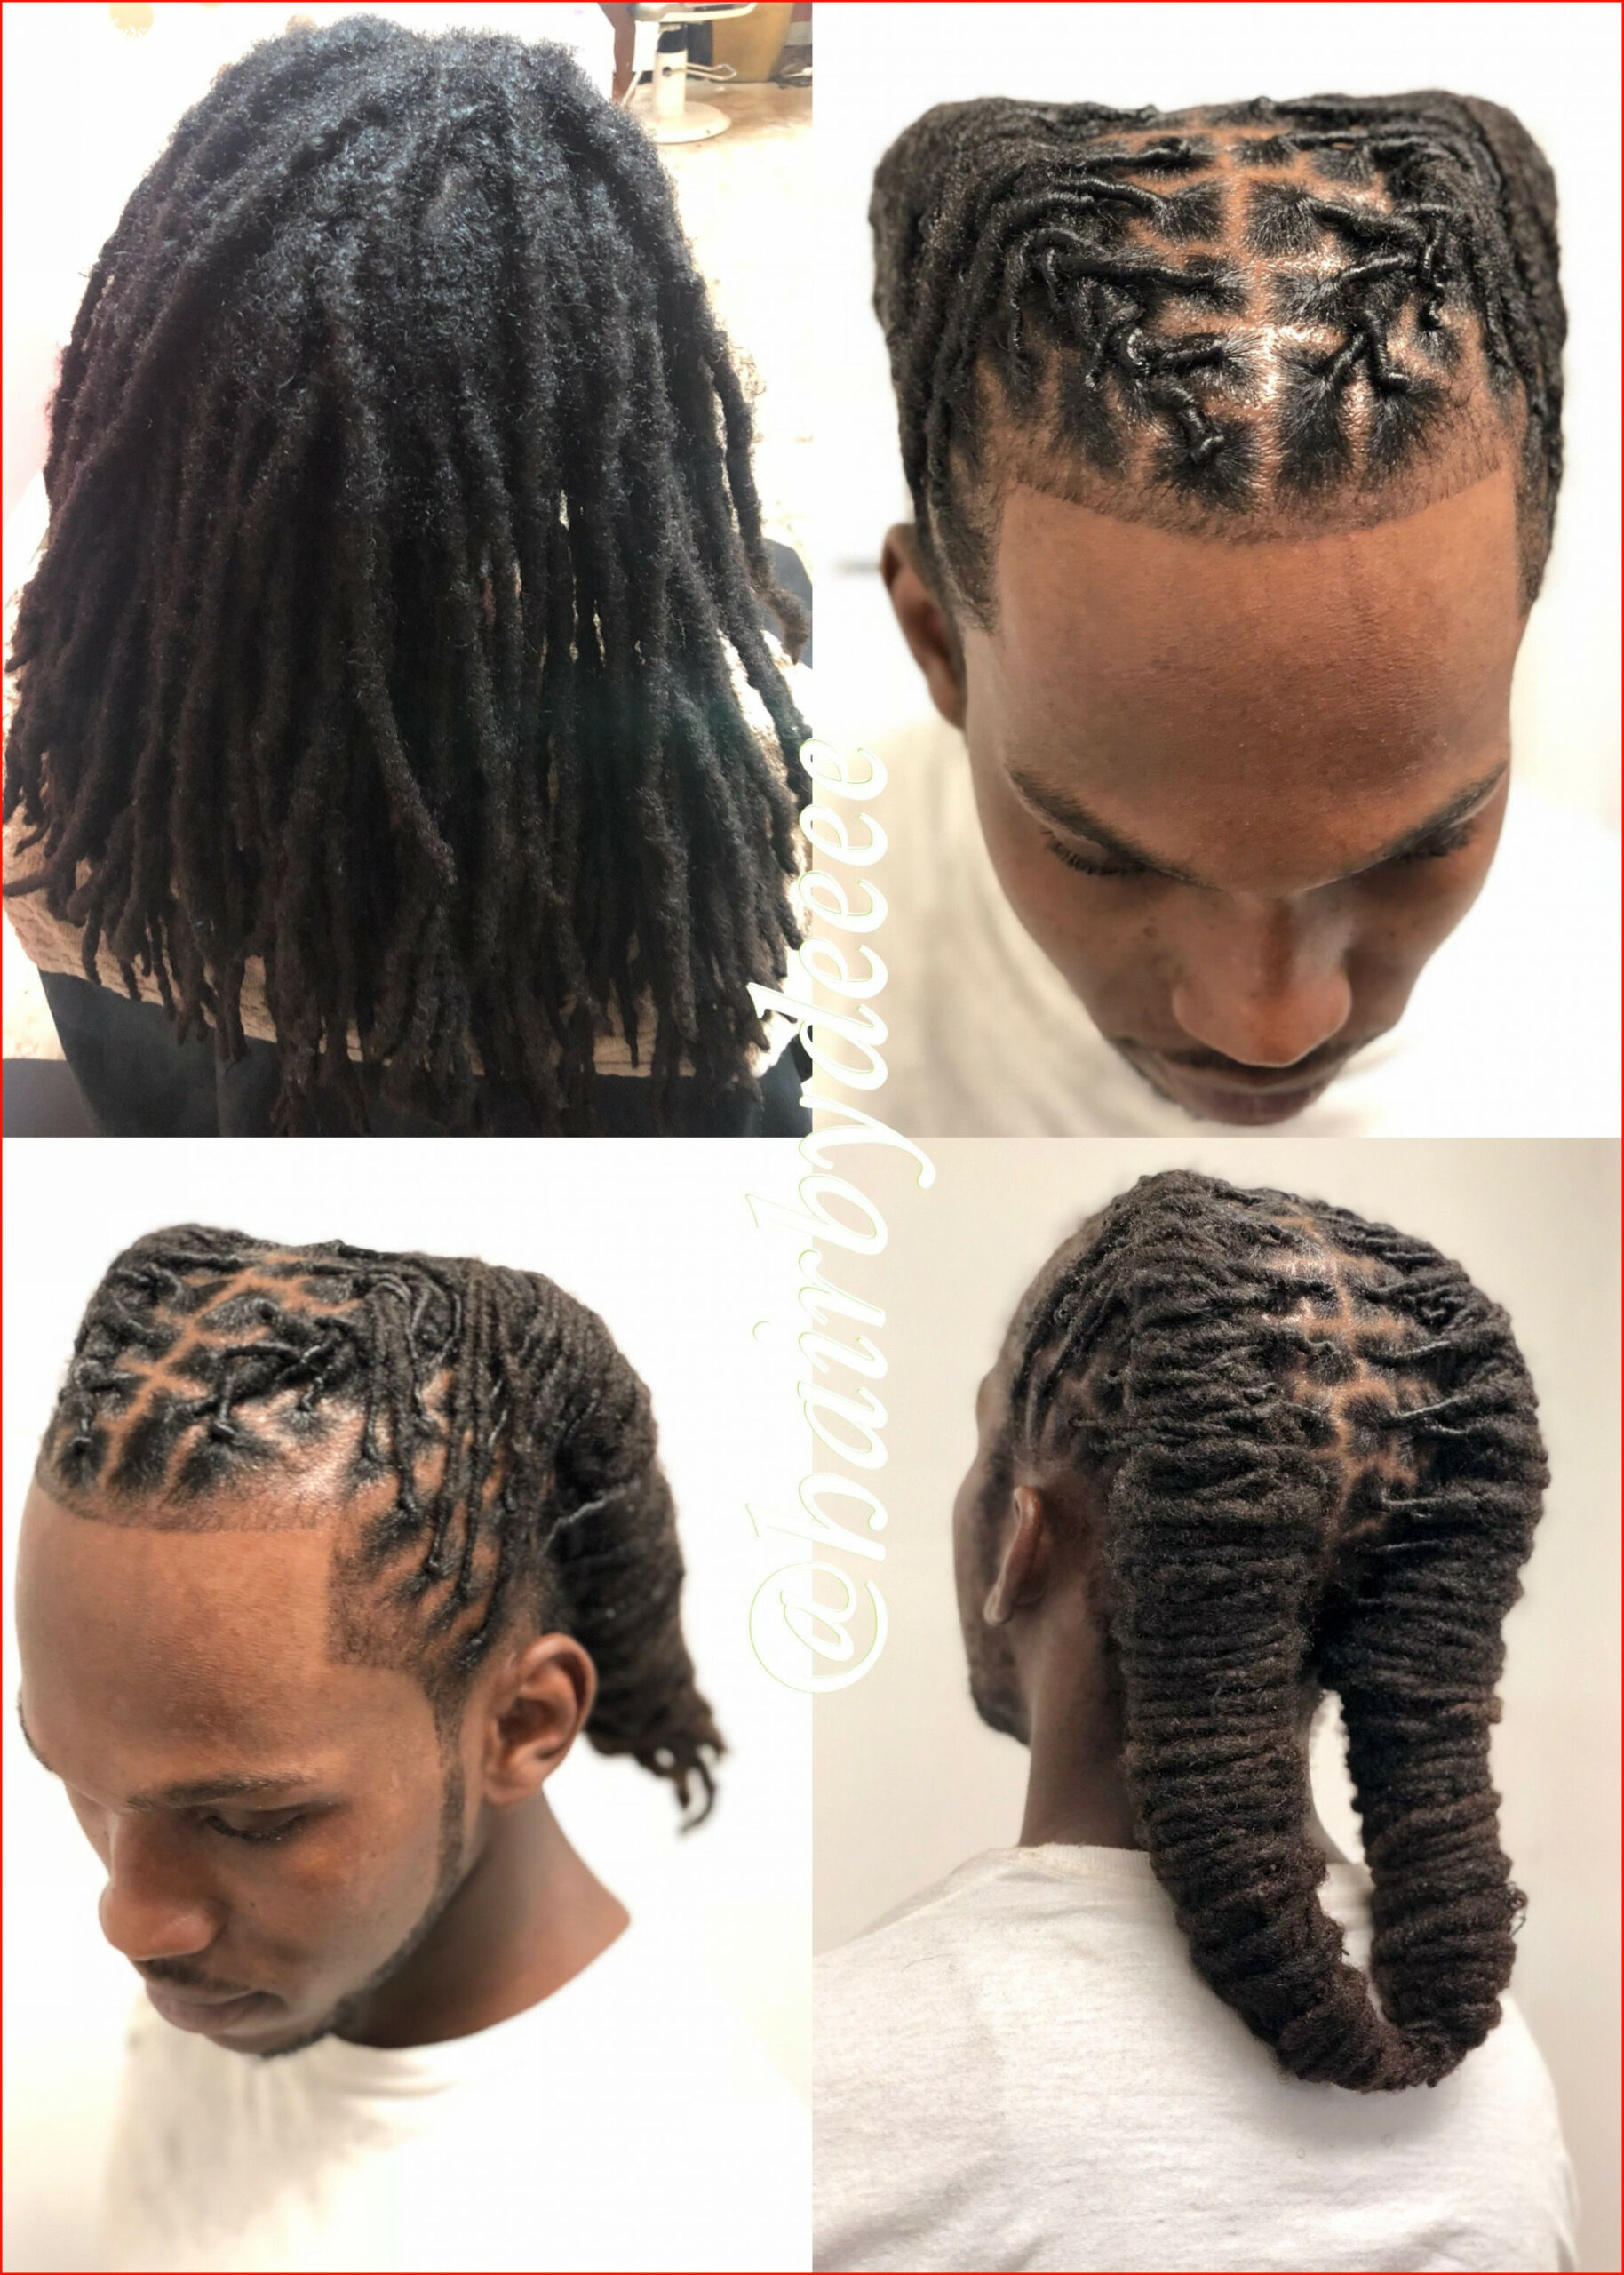 New Dreadlocks Hairstyles for Guys Picture Of Hairstyles Trends ...